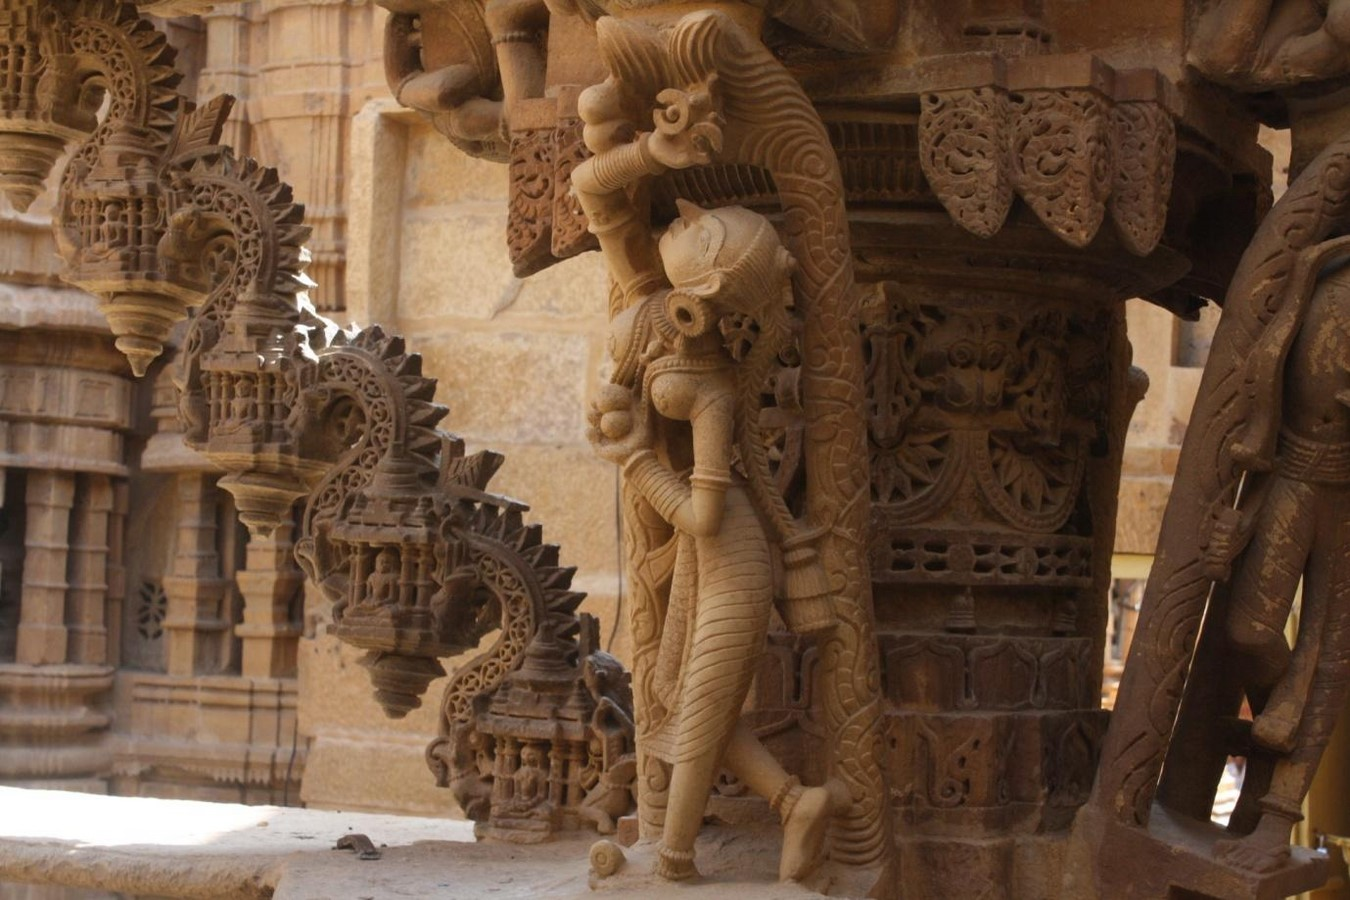 Evolution of ornamentation in Indian architecture - Sheet6